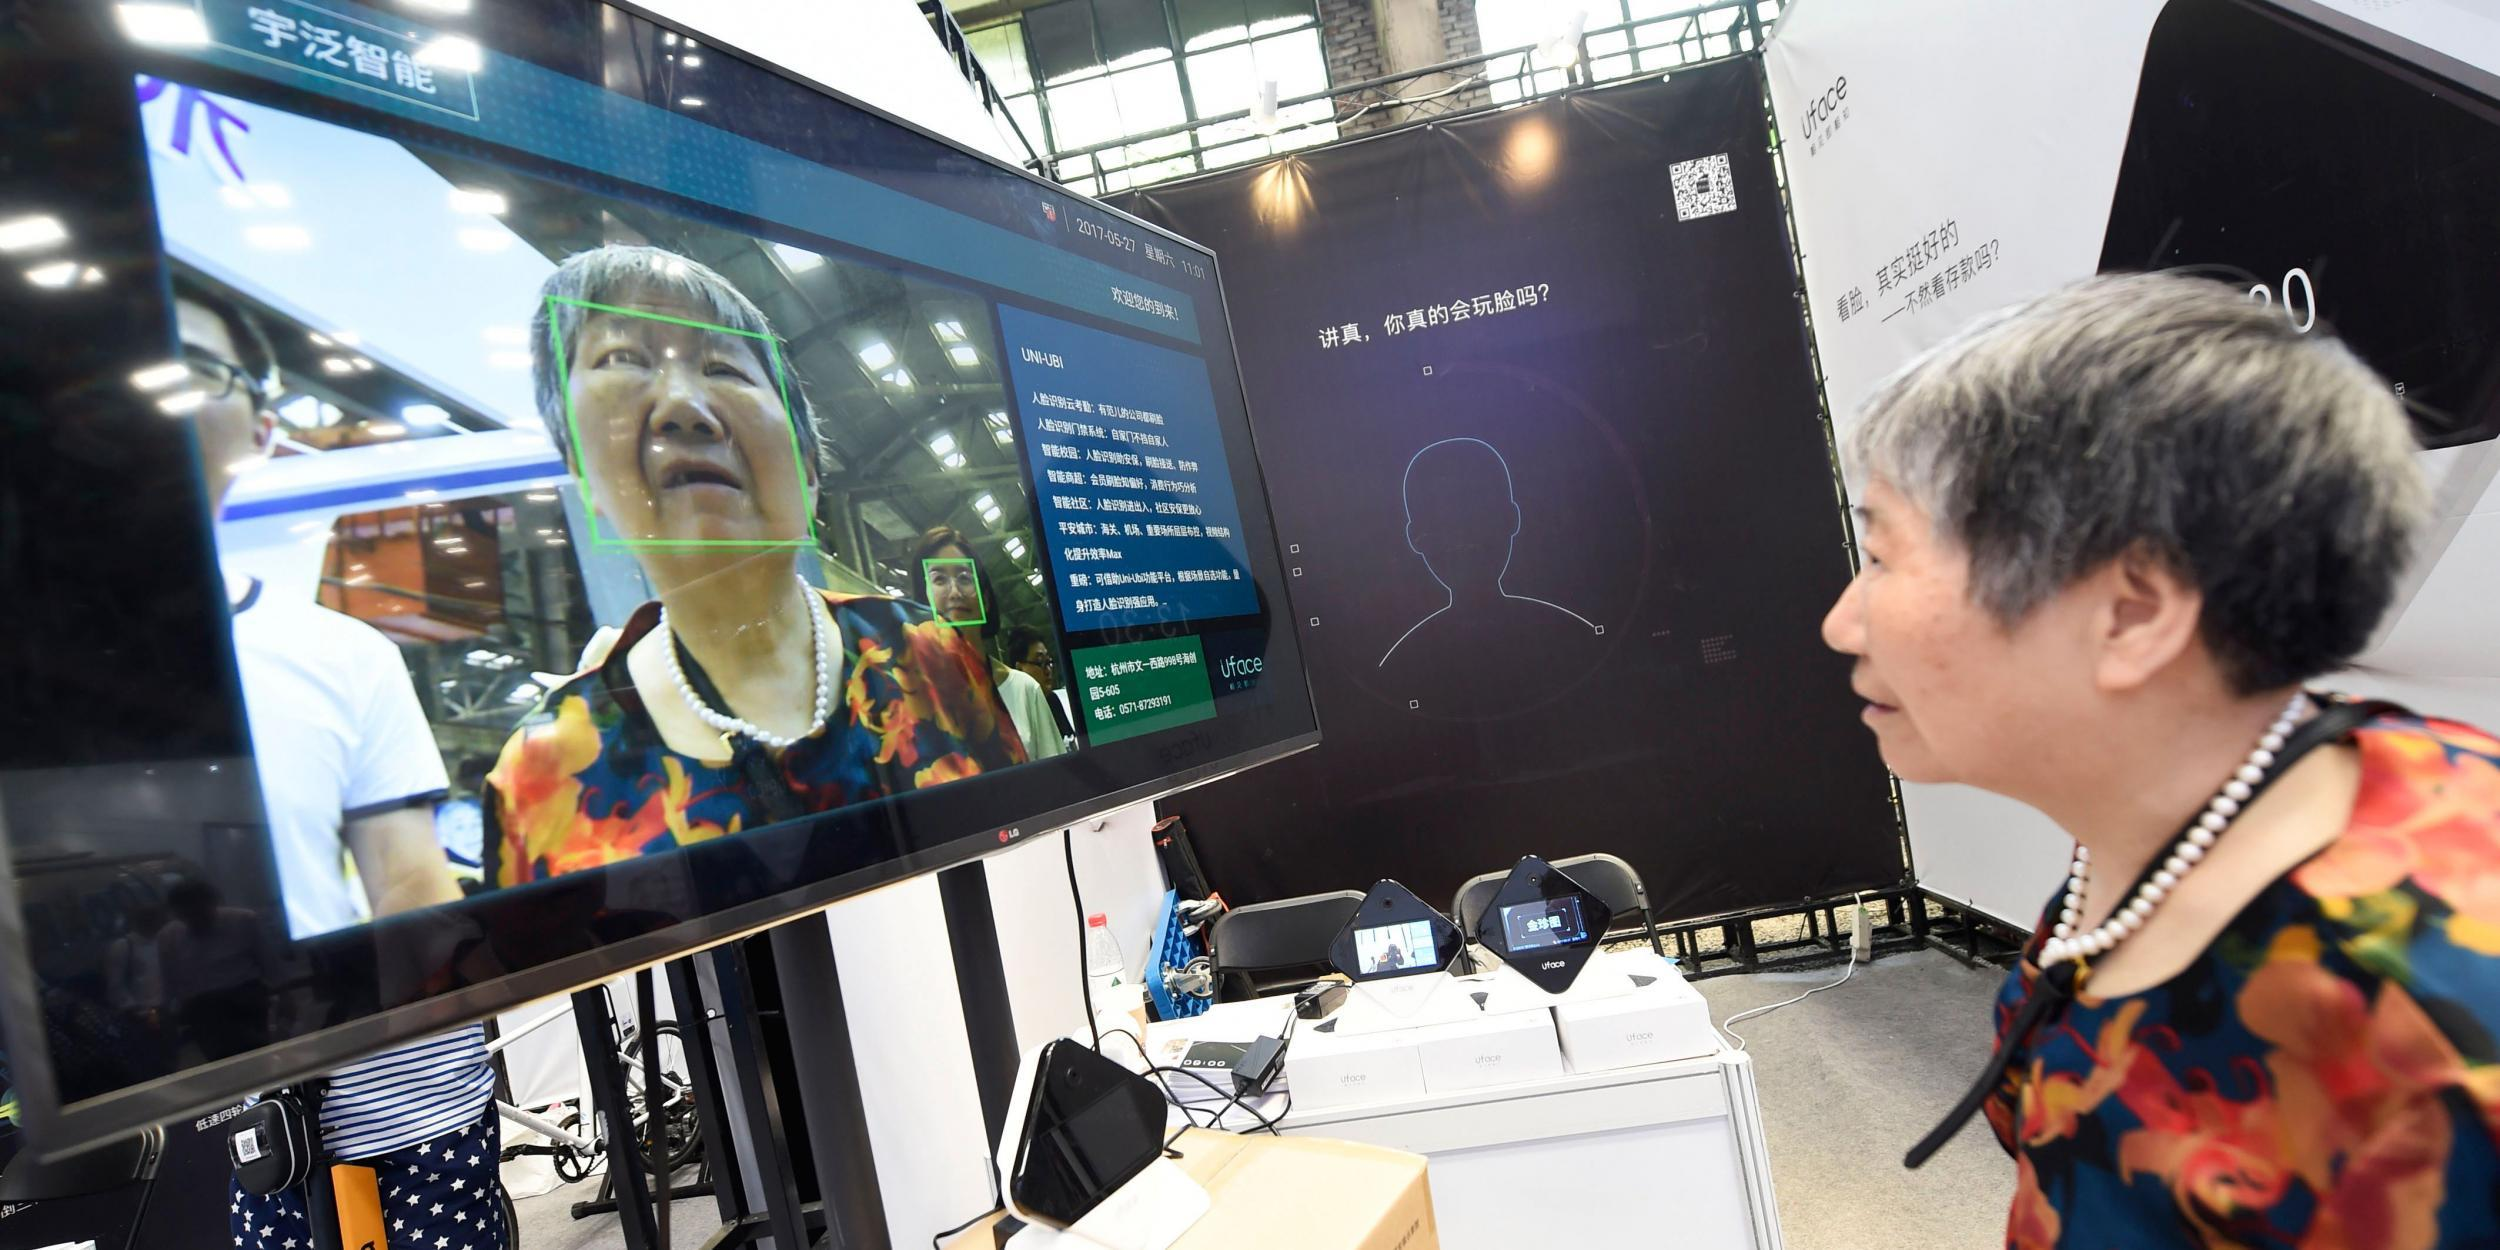 China is using technology to predict who is going to commit